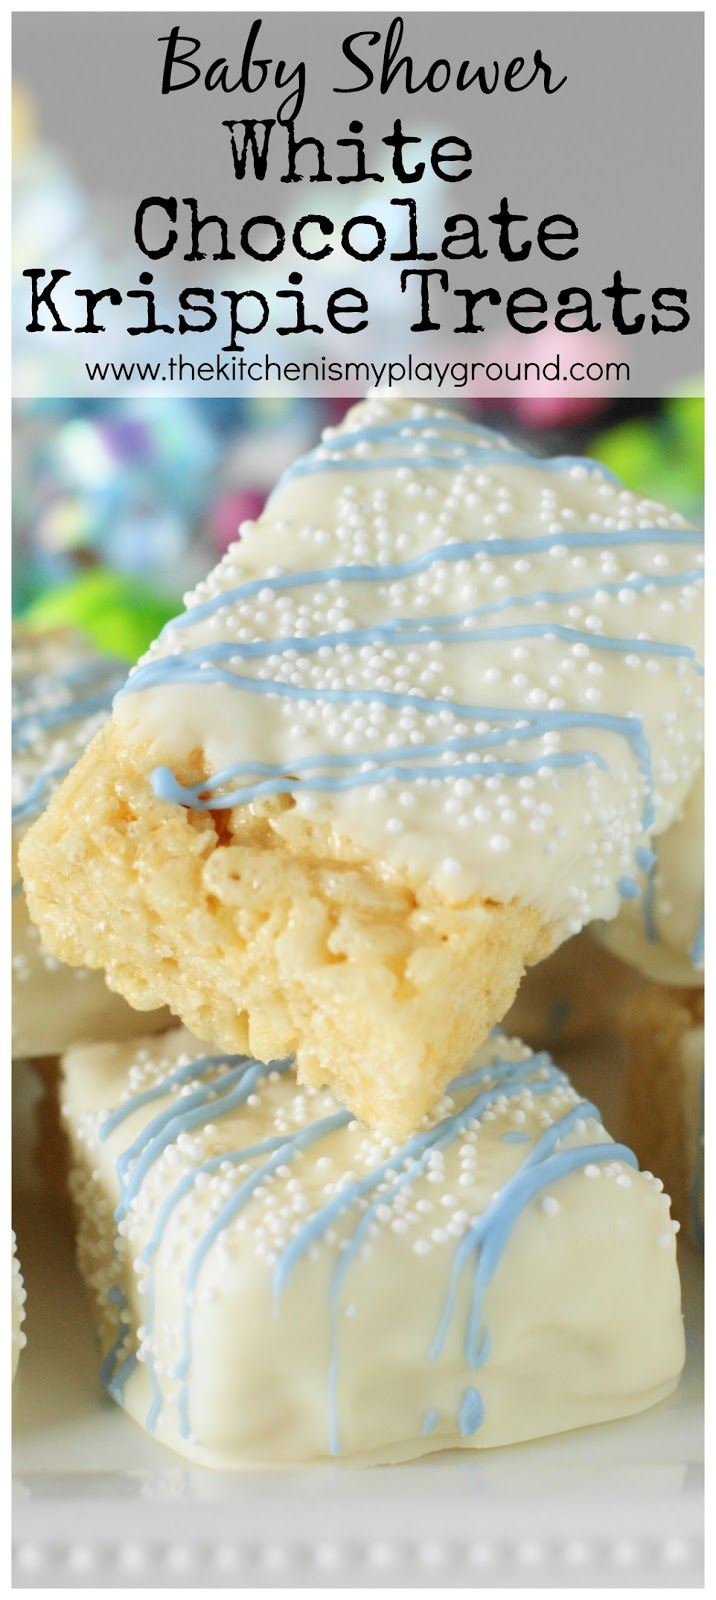 Home handmade candies chocolate dipped rice krispy treats 2 - White Chocolate Dipped Rice Krispie Treats An Easy Fun Treat For A Baby